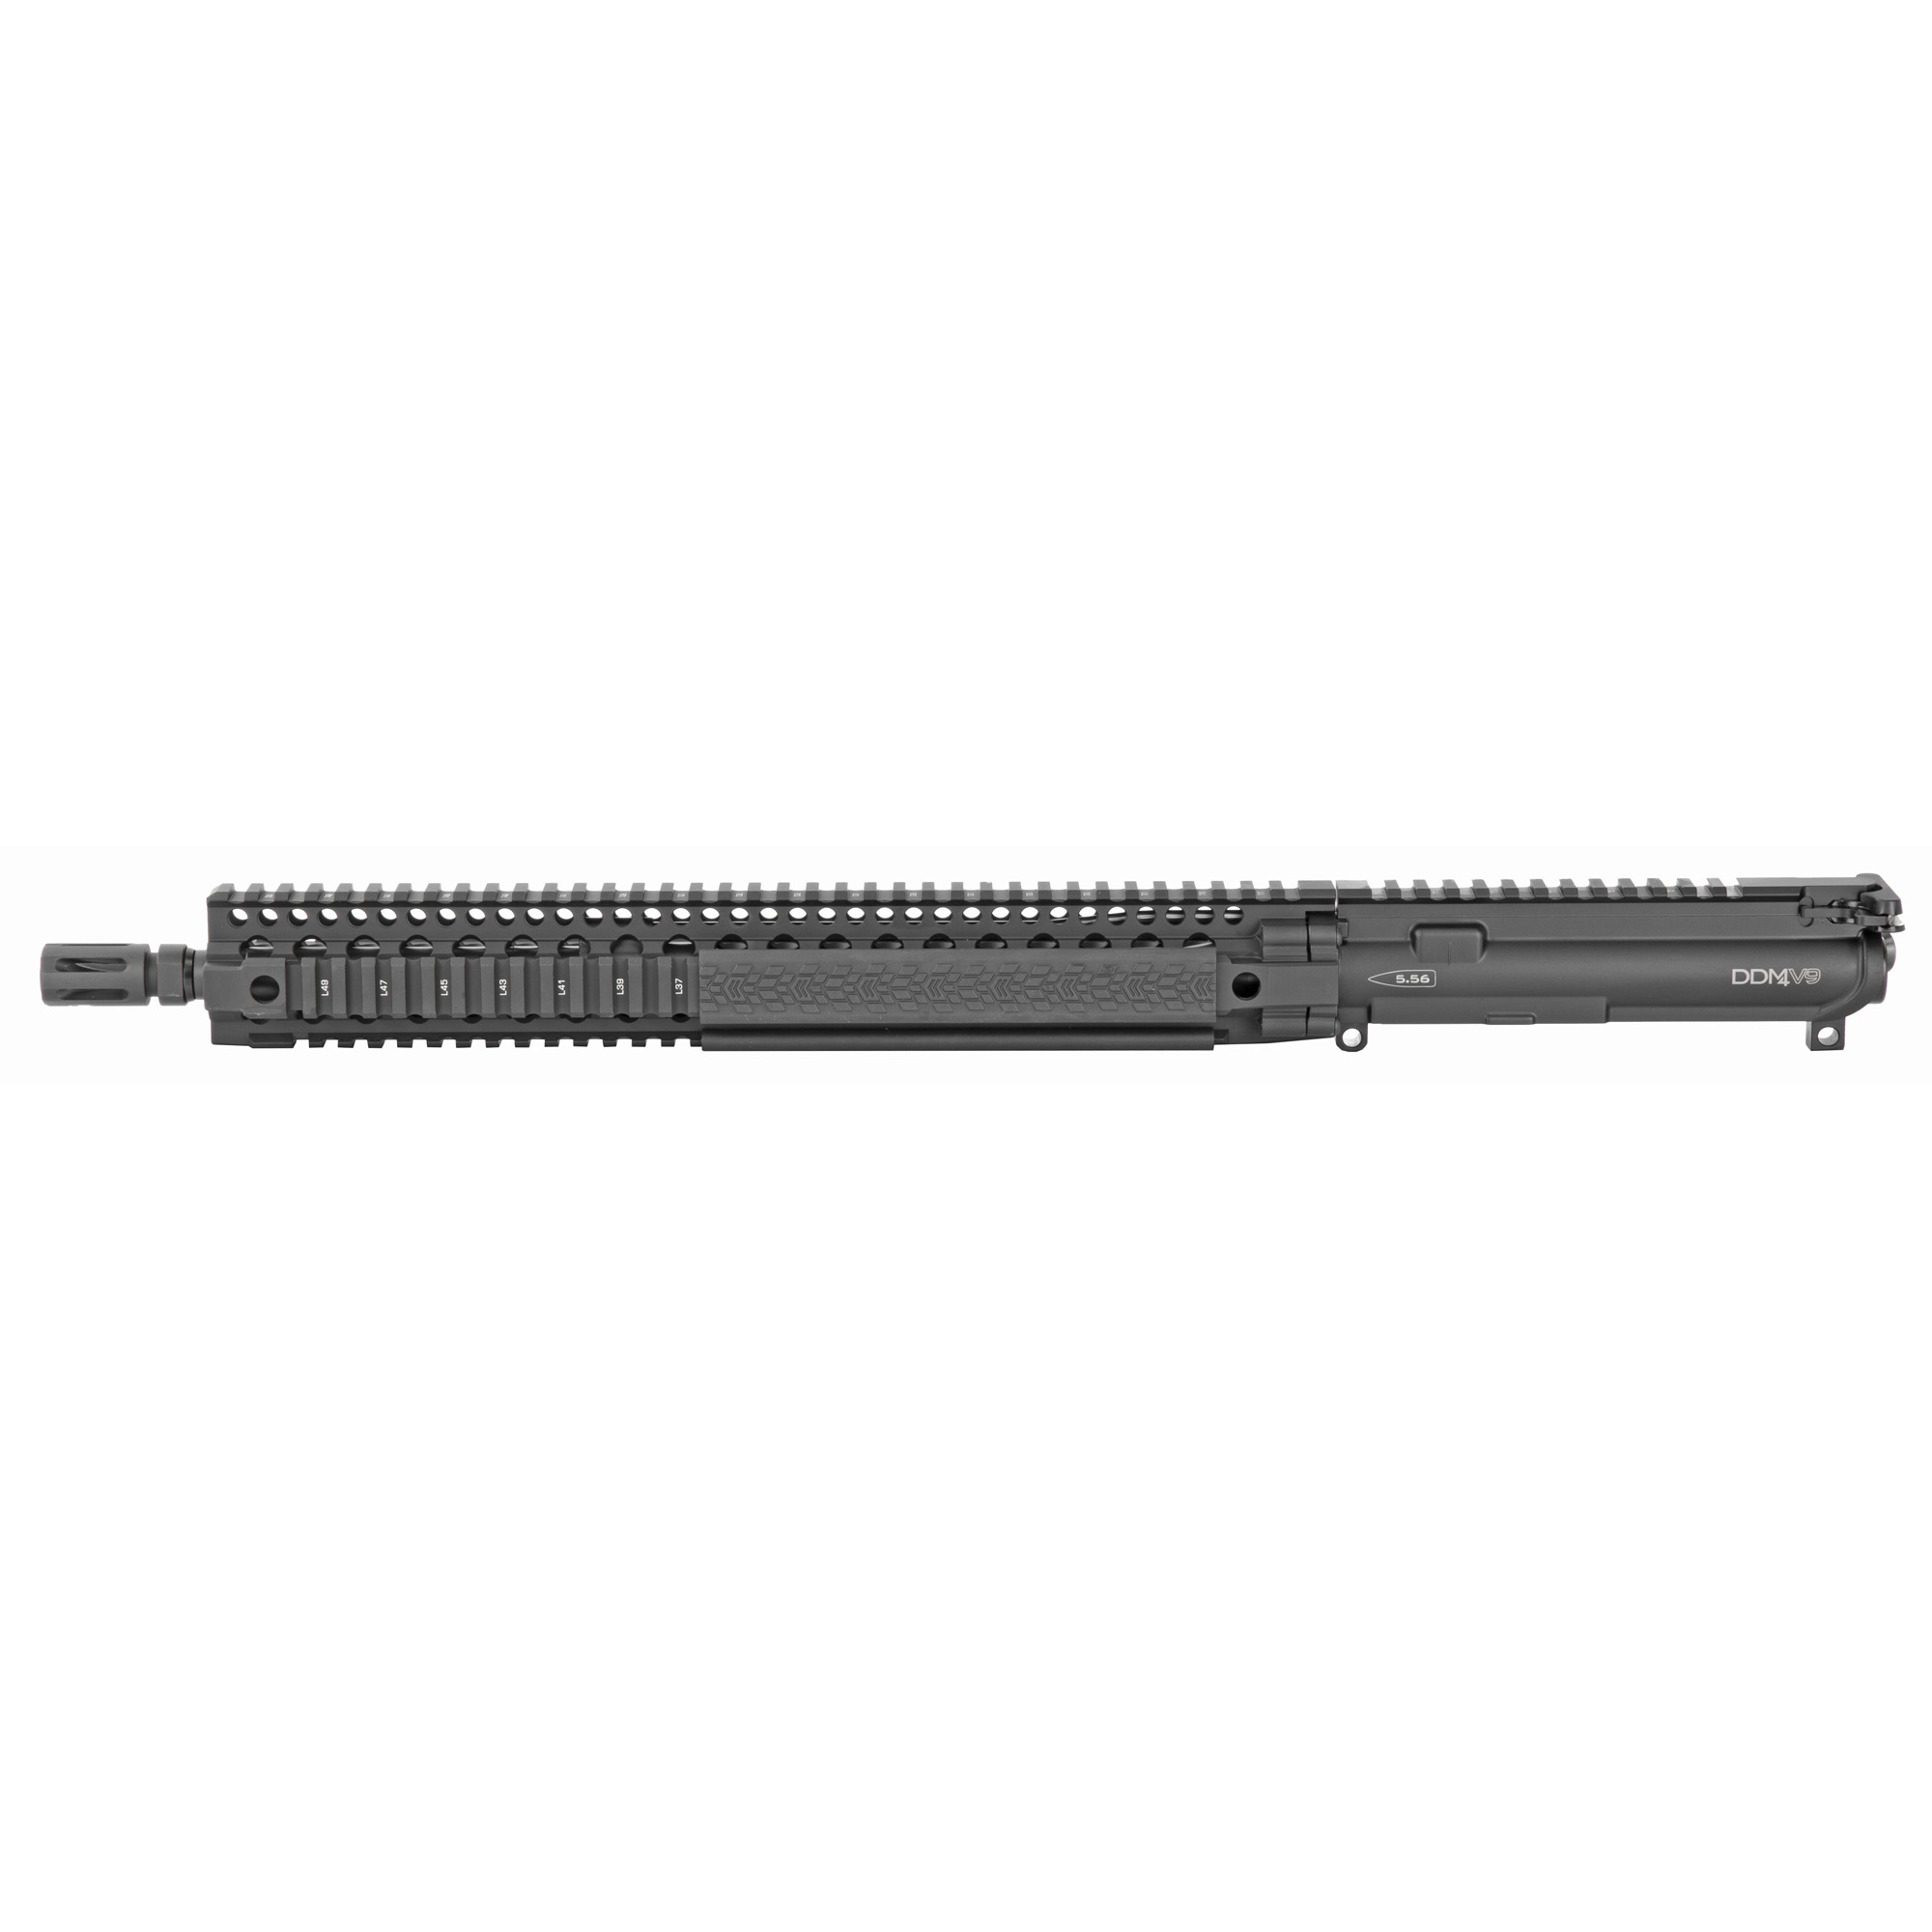 "The new Daniel Defense DDM4V9 Upper Receiver Group is designed to satisfy the needs of modern shooters not only in popular shooting sports but also for tactical and defensive applications. The long"" 15"" DDM4 quad rail over a 16"" cold hammer forged Government profile barrel gives the operator the option to have the support hand extended out close to the muzzle allowing them to drive the gun more precisely"" and preventing over travel when transitioning between multiple targets. This combined with a mid-length gas system which is known to have a smoother recoil impulse allows for quick but precise rapid fire. The longer rail also affords the shooter plenty of real estate for optics and accessories and allows for maximum sight radius for accurate shooting with rail mounted iron sights. The new independently ambi GRIP-N-RIP Charging Handle accommodates left- and right-handed shooters and is engineered for suppressed fire"" with anti-gas features that redirect gas flow upward and away from the face and operator. The V9 URG is equipped with a single pinned low profile gas block that is drilled"" taper reamed"" and press fit into place to securely attach the low profile gas block to the barrel assembly. All Daniel Defense complete upper receiver groups come standard with an M16 profile bolt carrier group."